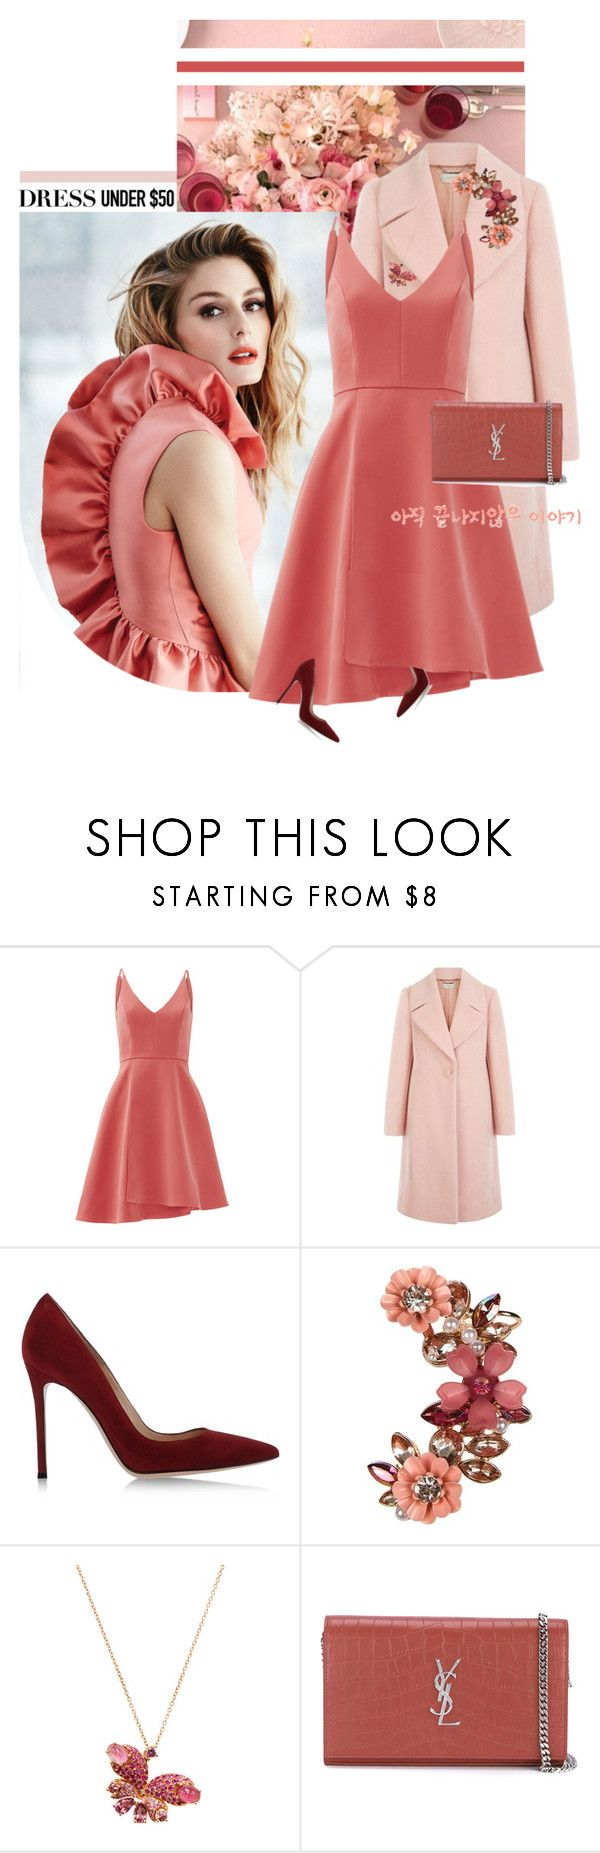 """""""Kilig"""" by chebear ❤ liked on Polyvore featuring Gabor, Keepsake the Label, Hobbs, Gianvito Rossi, New Look, Novarese, Yves Saint Laurent and Dressunder50"""